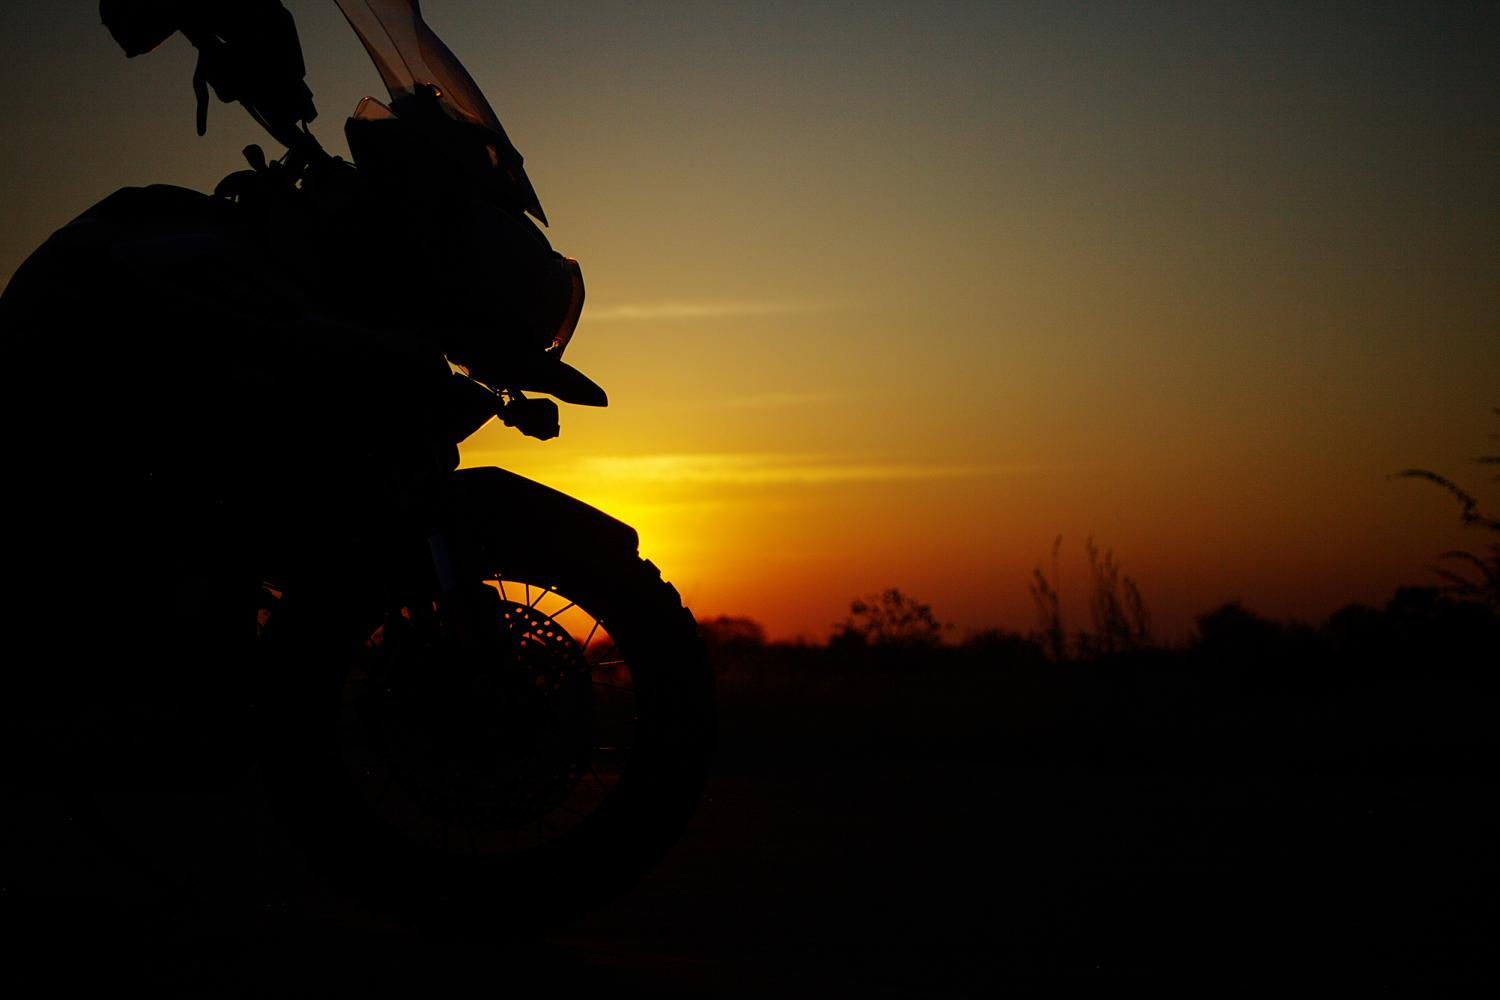 Safari Africa Adventure Motorcyle Tour By Compass Expeditions